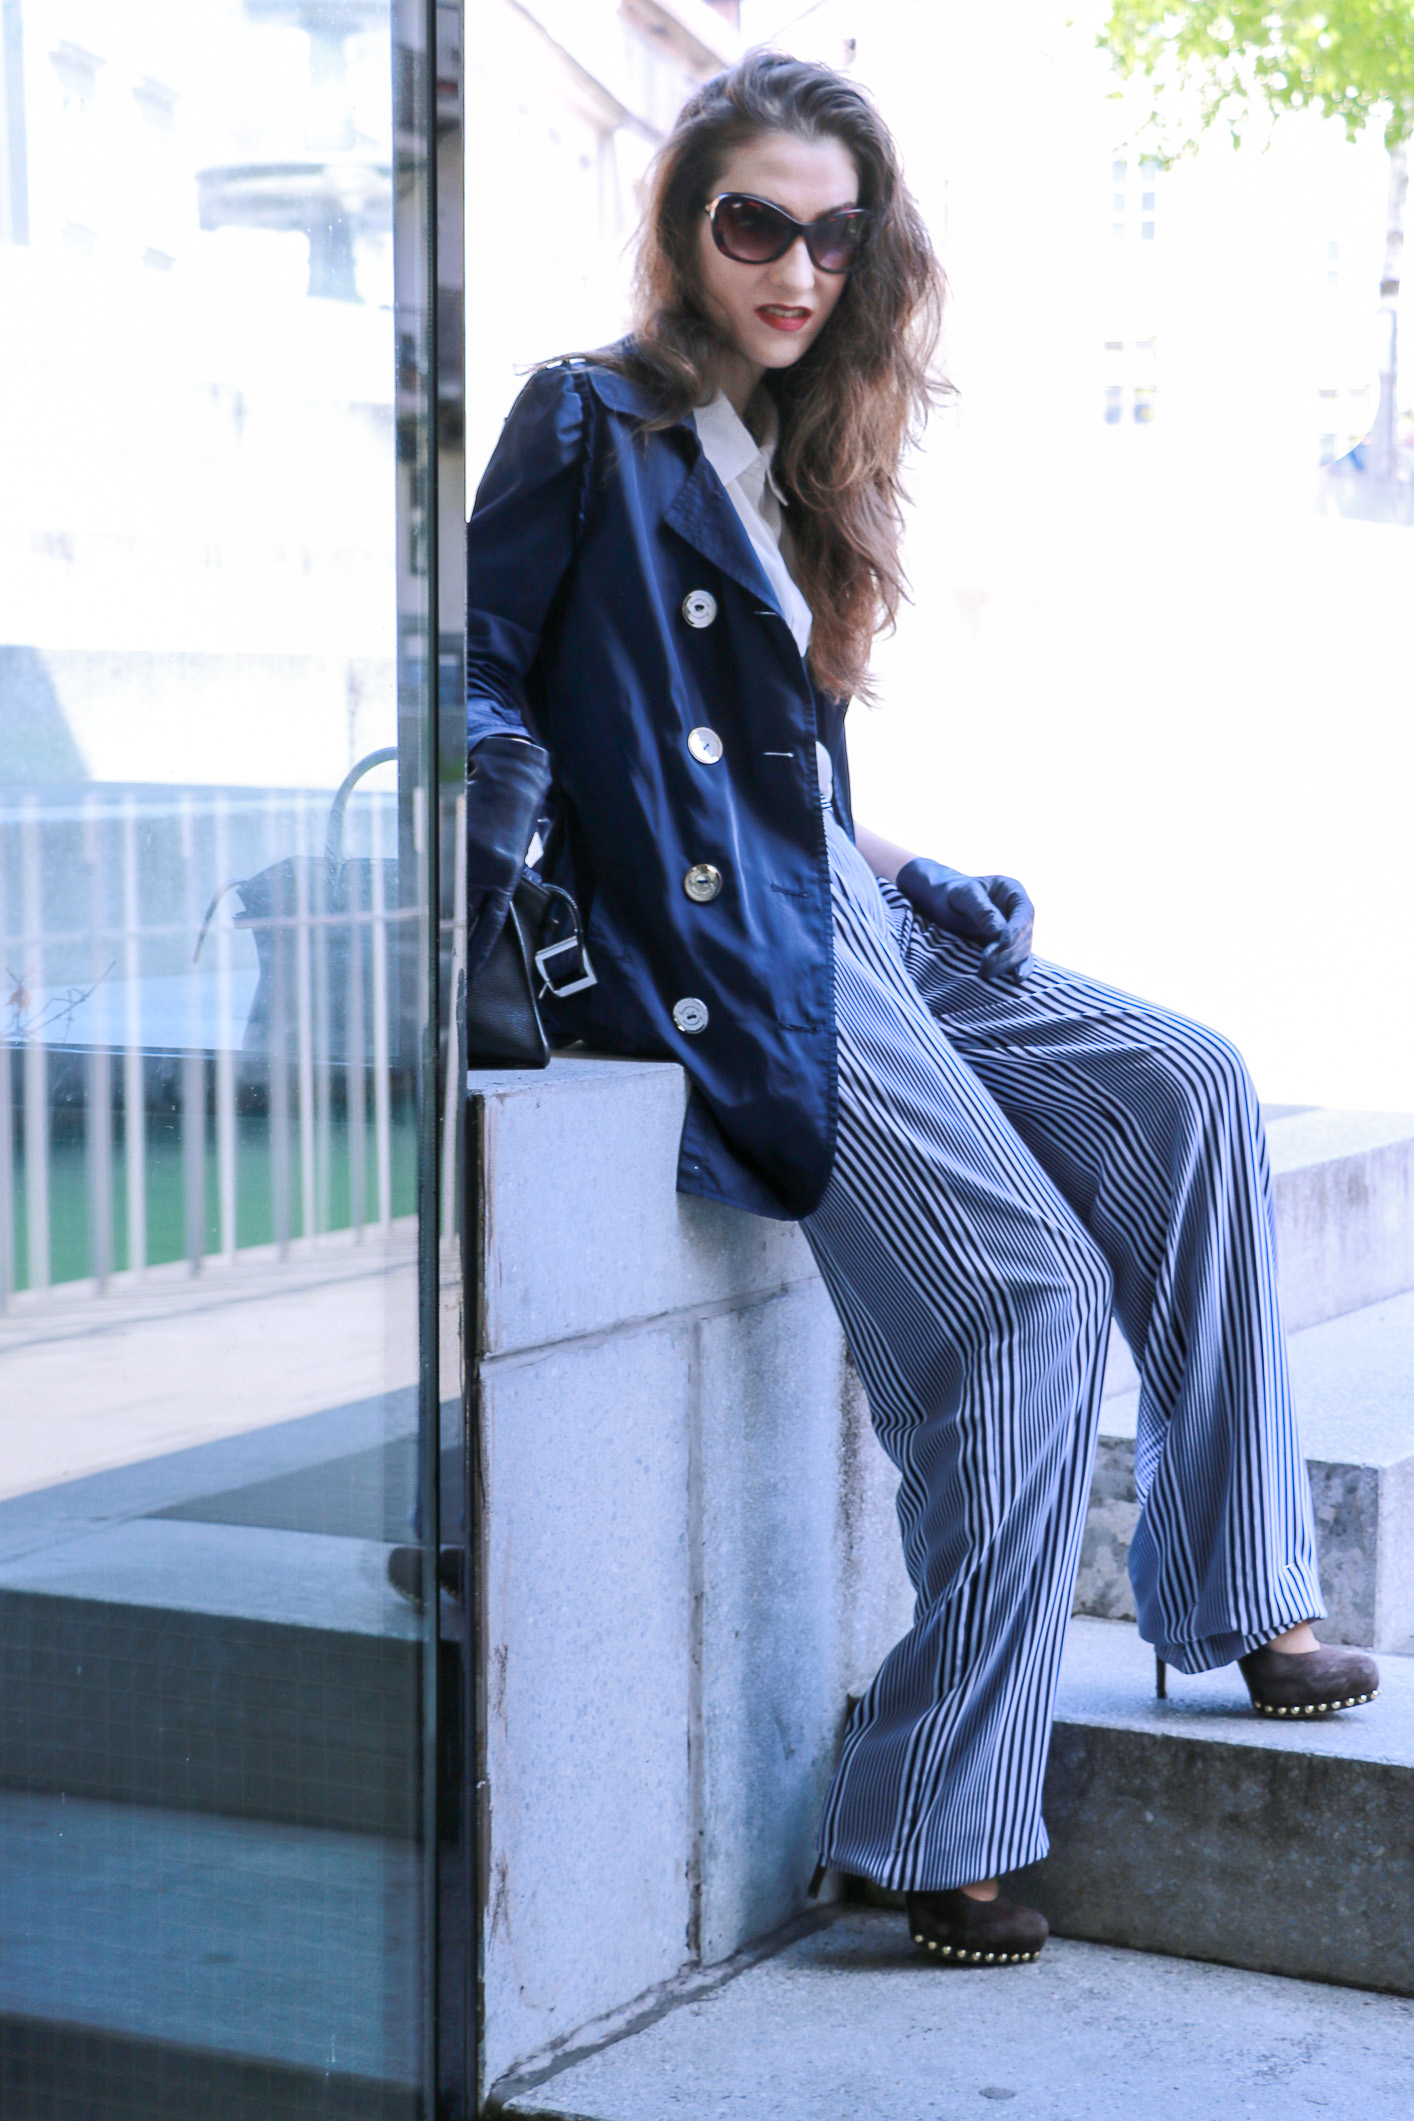 Fashion blogger Veronika Lipar of Brunette From Wall Street sharing how to wear wide-leg trousers with stripes for a chic casual look this spring